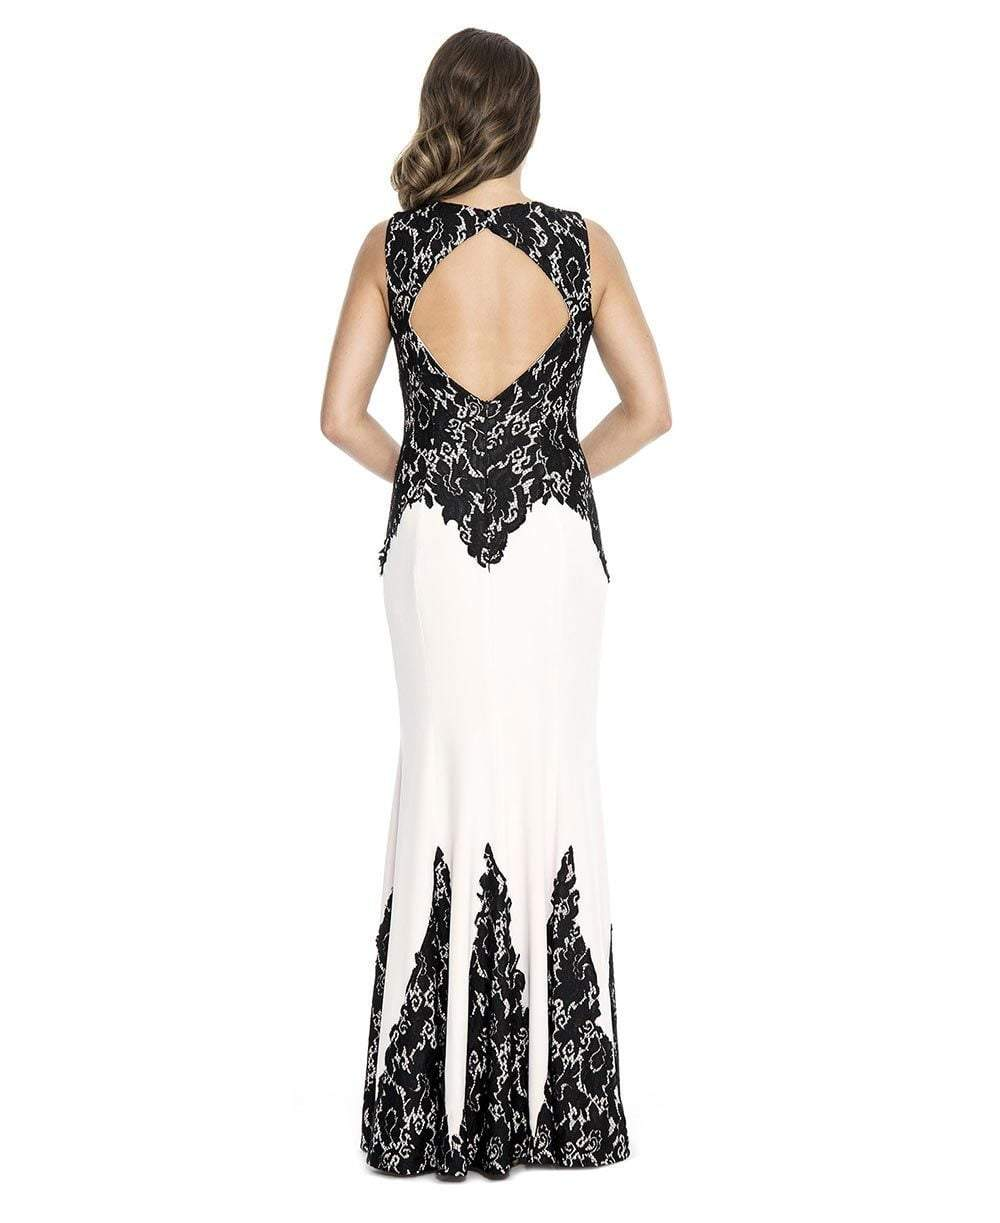 Decode 1.8 - 183973 Embroidered Fitted Jewel Evening Dress in Black and White